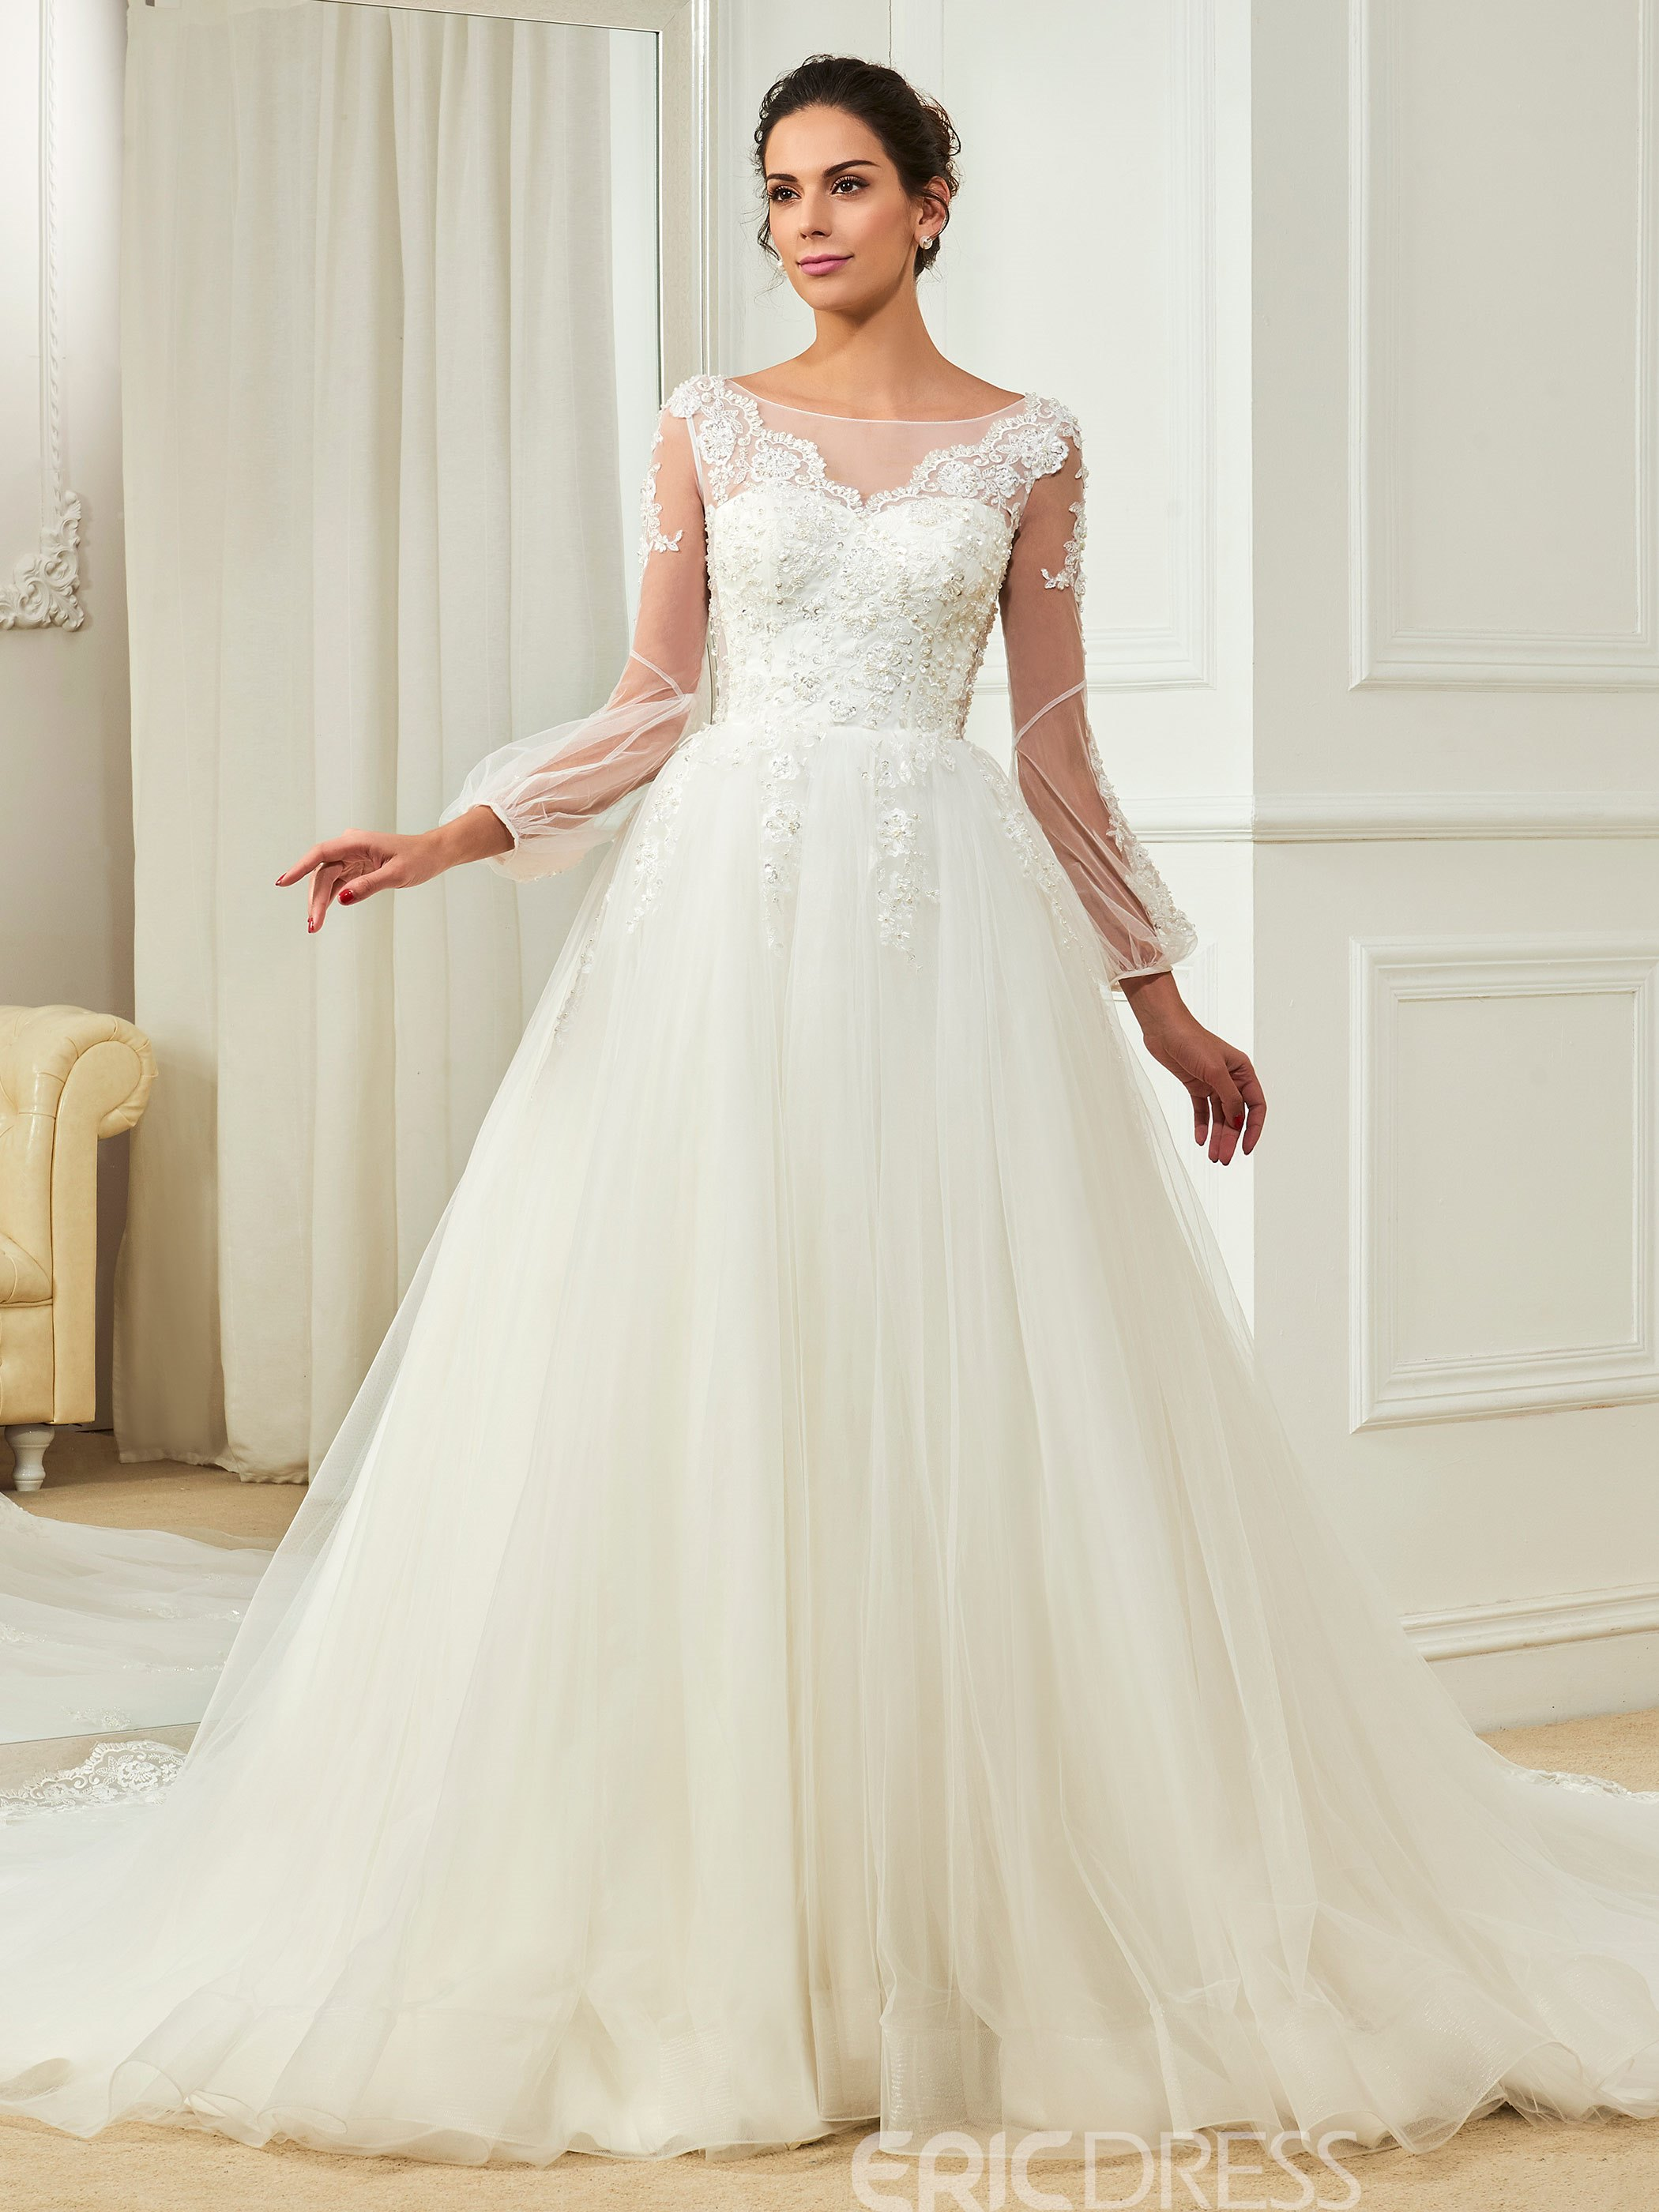 786591d65489 Ericdress Charming Bateau Appliques Beaded A Line Long Sleeves Wedding Dress